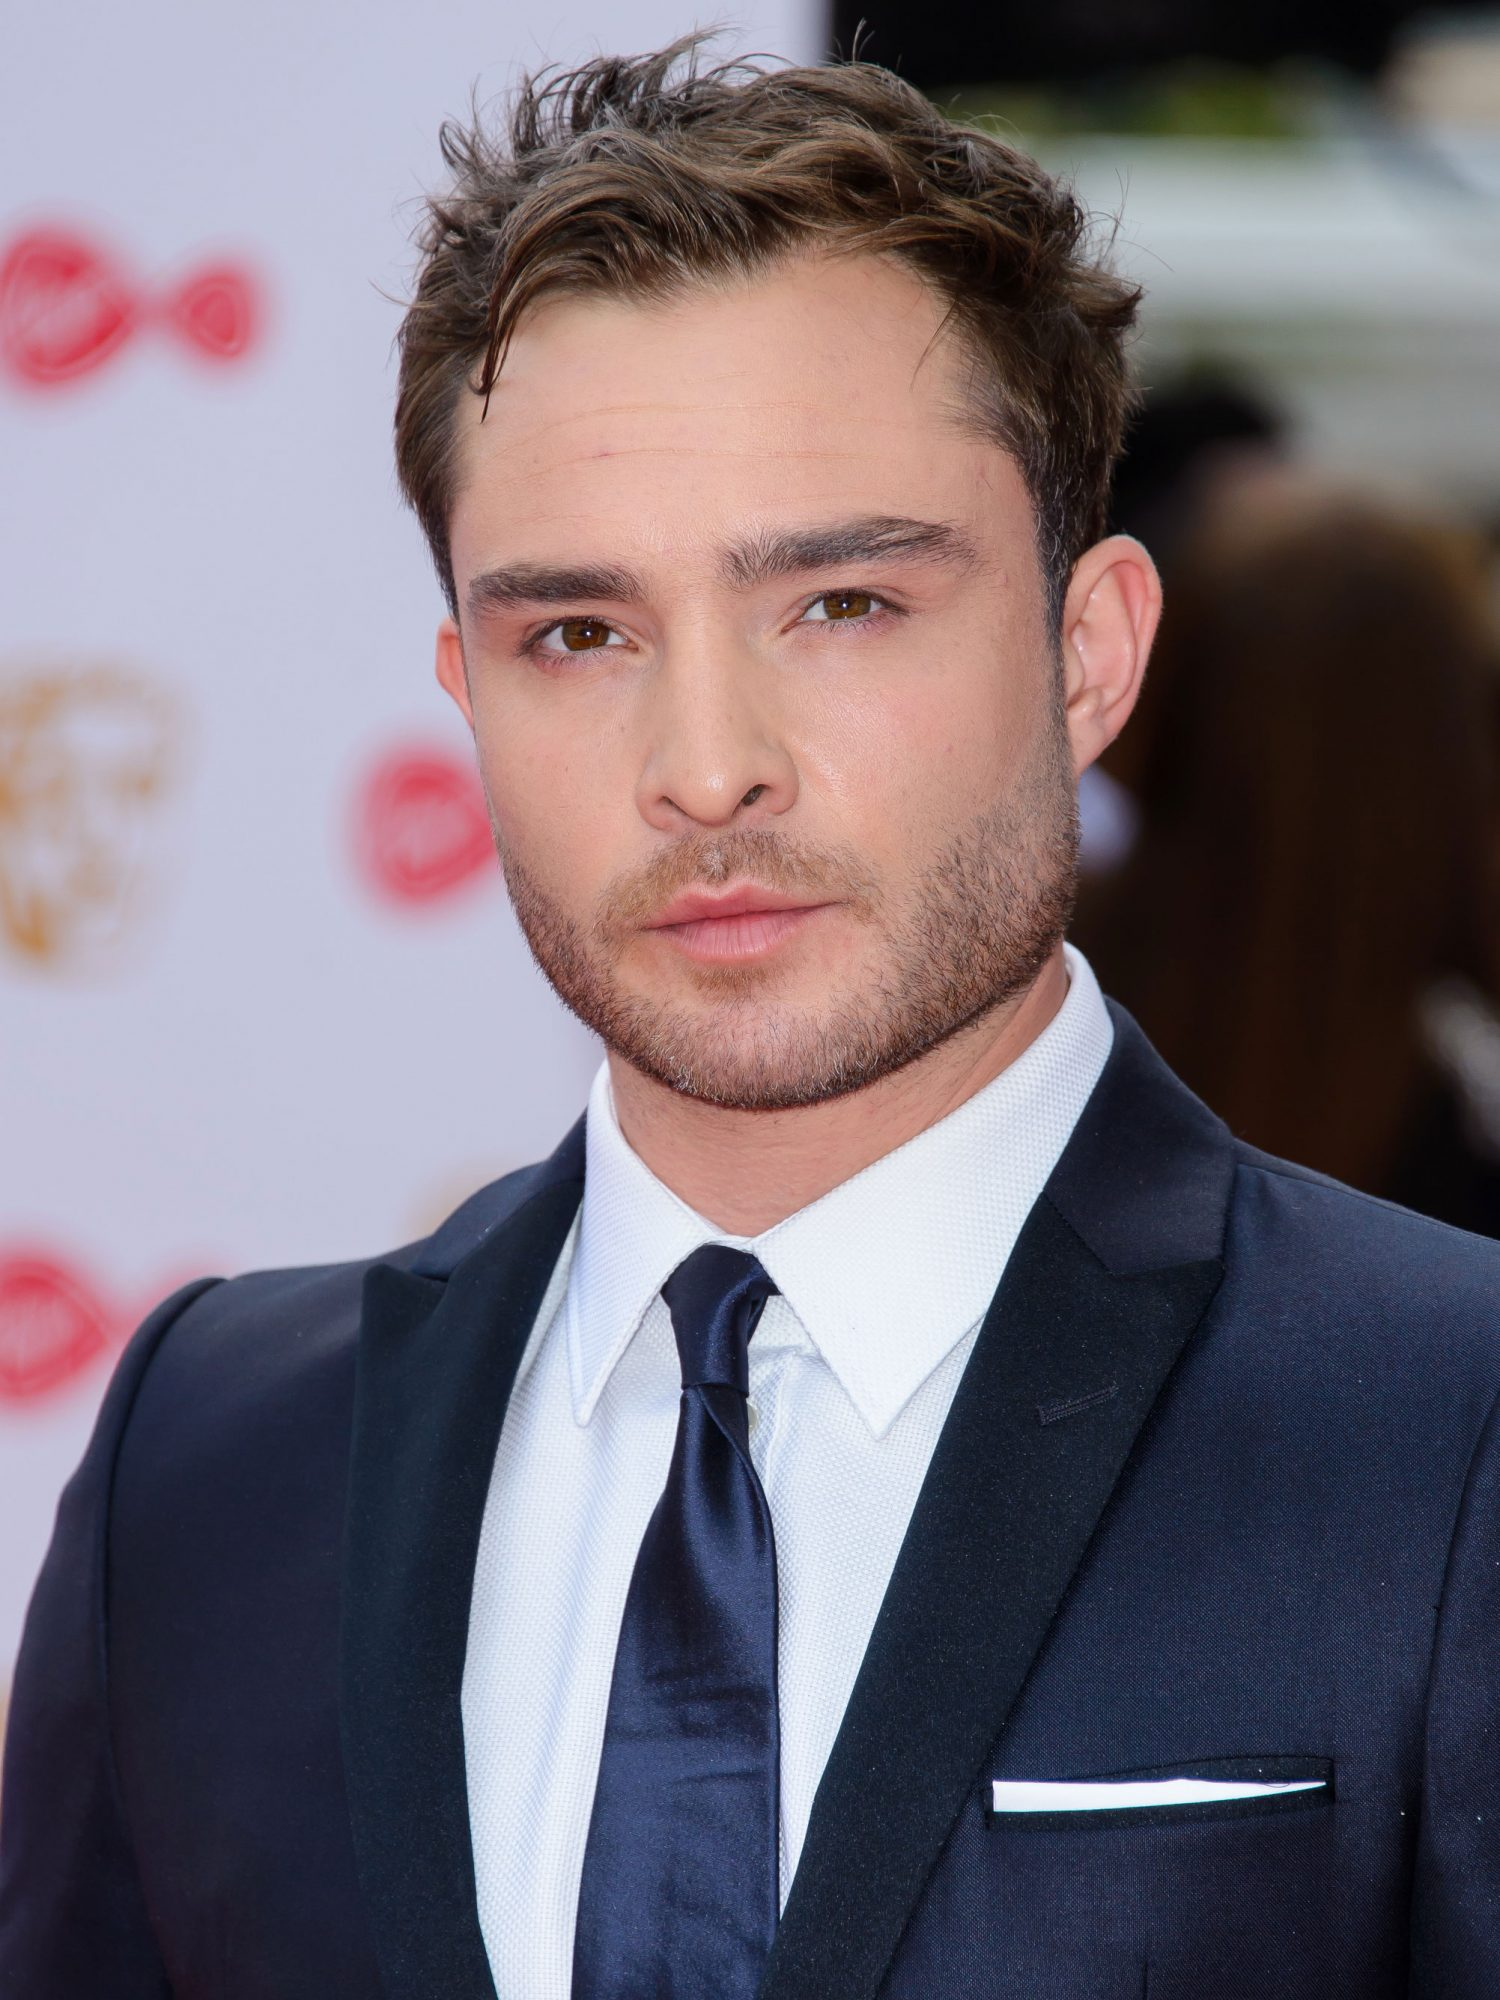 Ed Westwick Replaced in Agatha Christie Drama Following Sexual Assault Claims